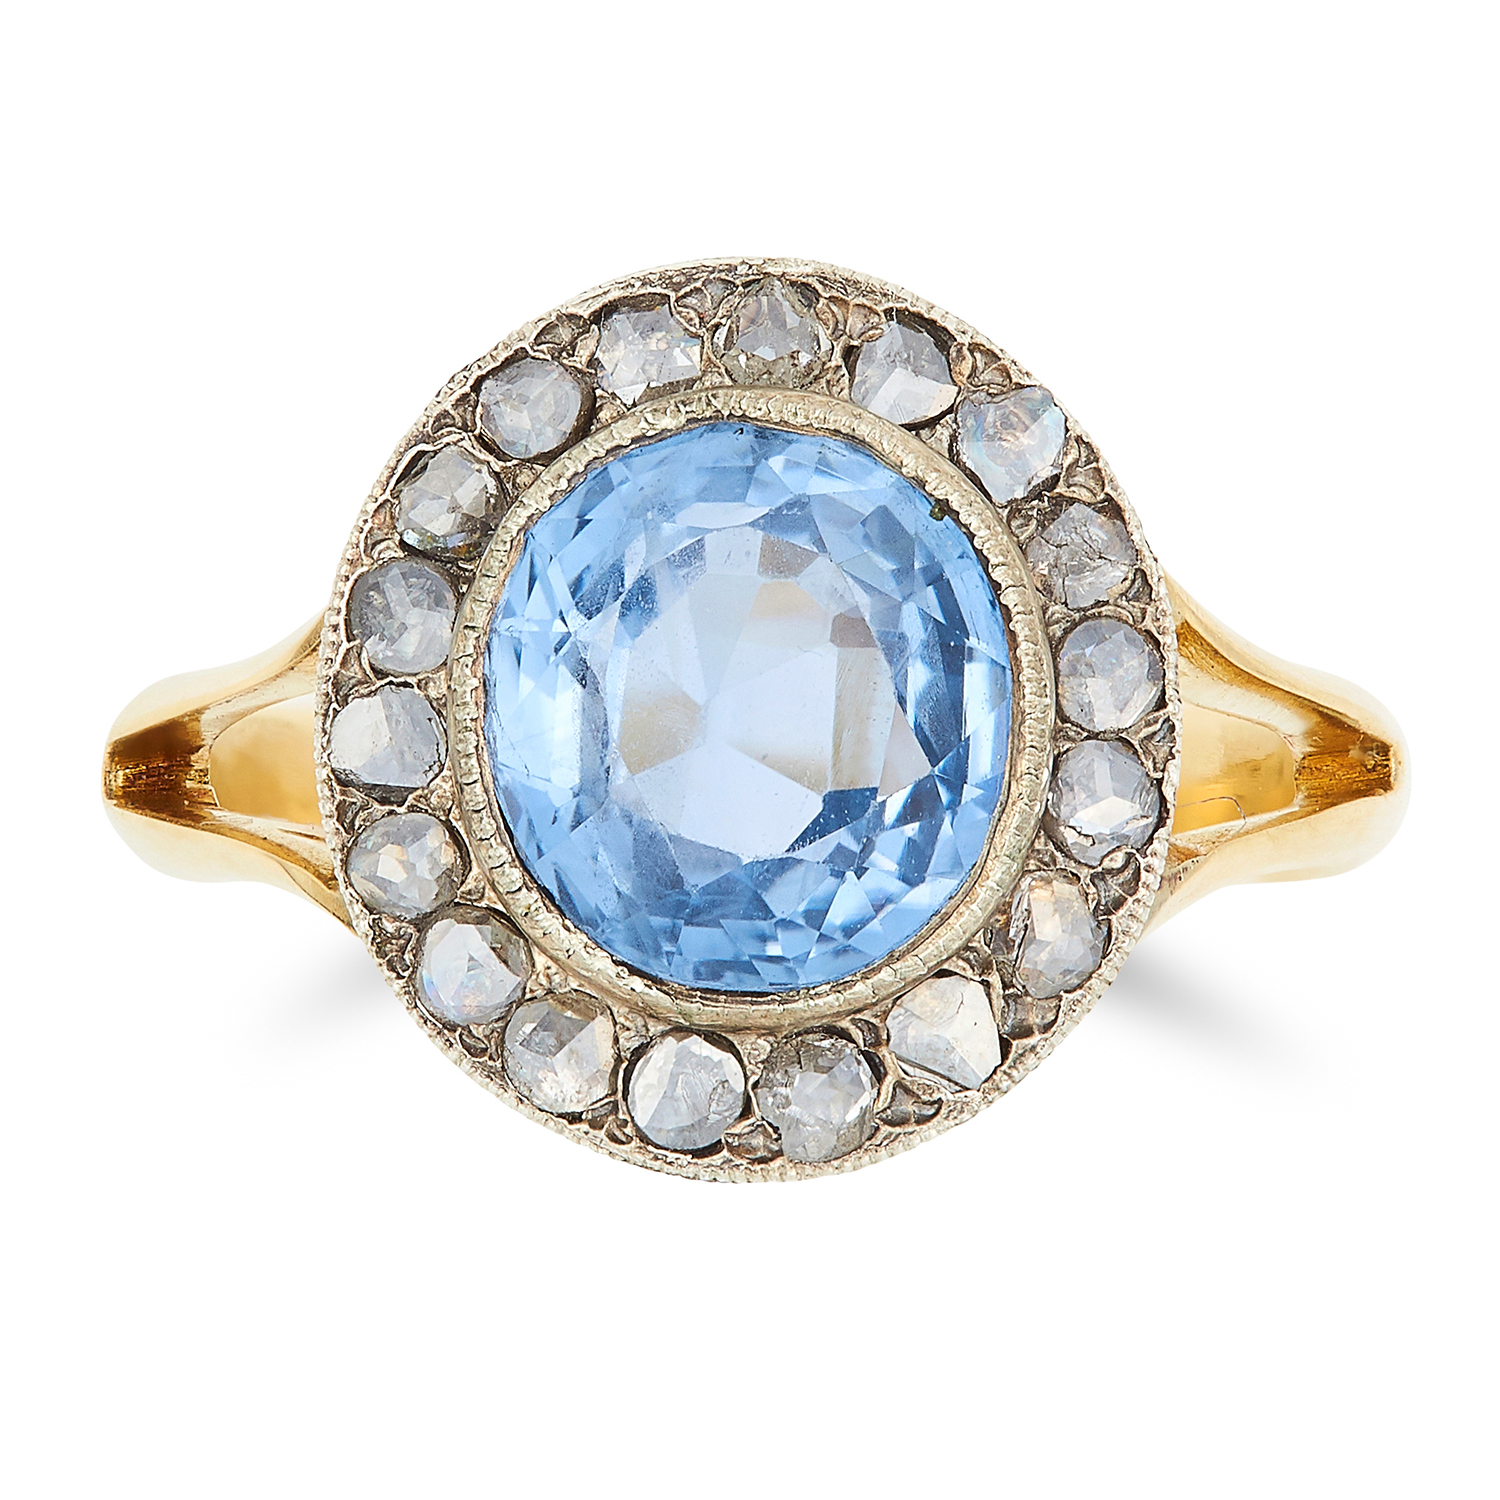 Los 51 - 2.55 CARAT CEYLON NO HEAT SAPPHIRE AND DIAMOND RING set with an oval cut sapphire of 2.55 carats and